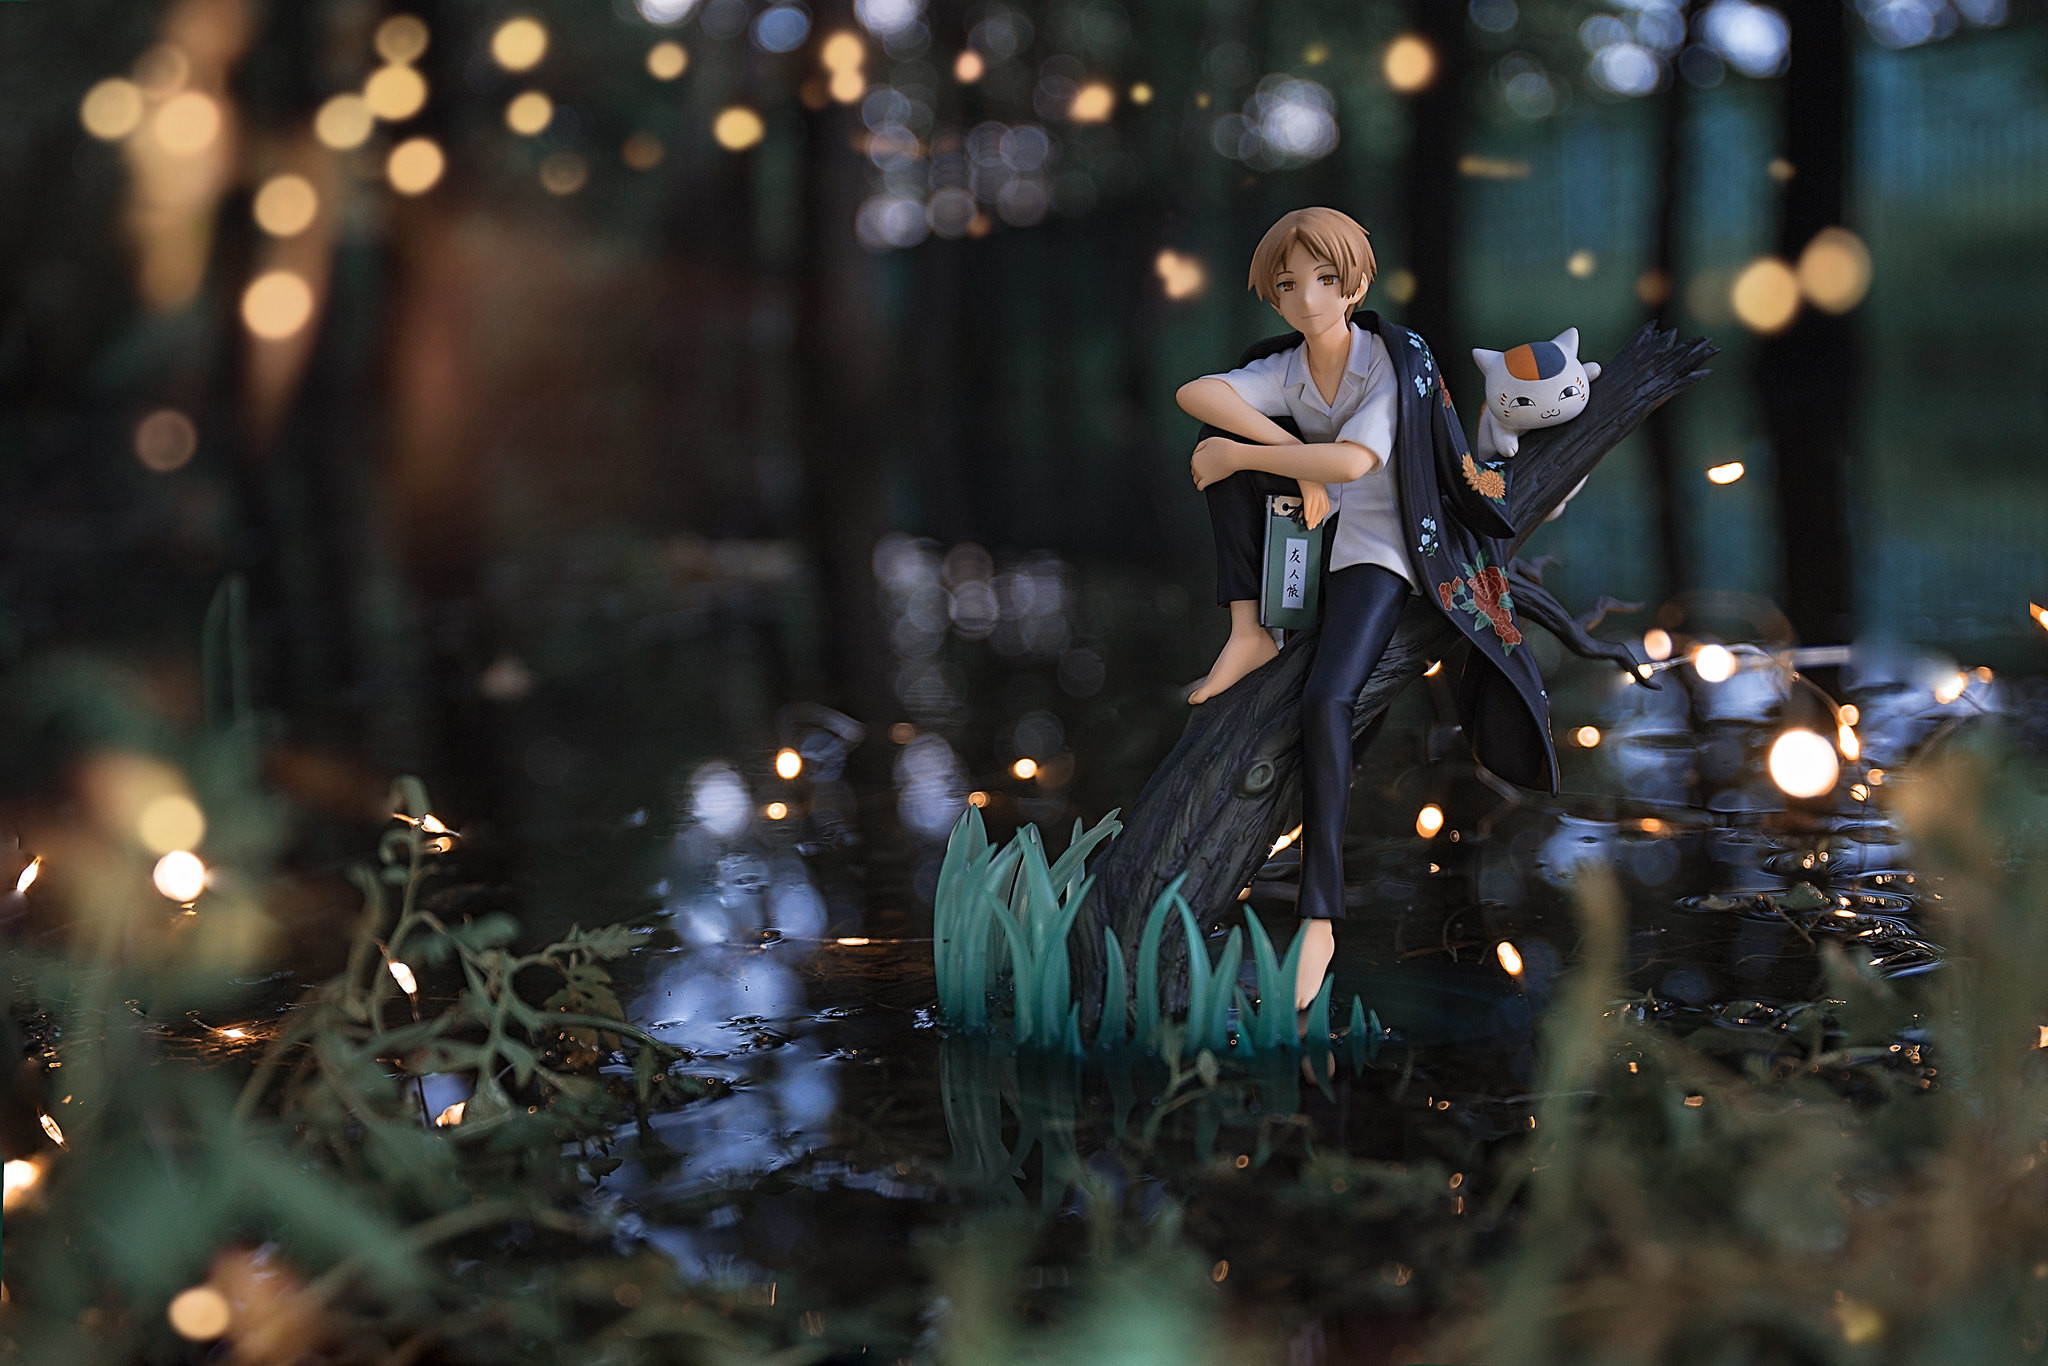 Just a whisper of the forest and the twinkle of fireflies. Spark